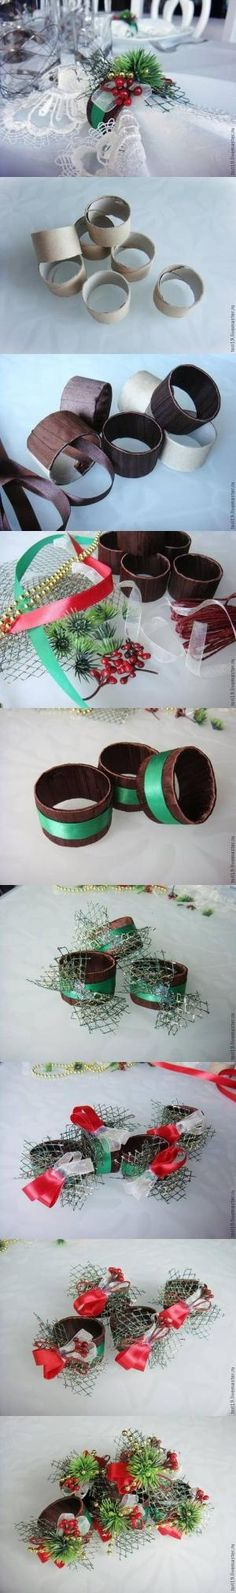 How to make Toilet Paper Roll Custom Napkin Rings DIY tutorial instructions, How to, how to do, diy instructions, crafts, do it yourself, di by Mary Smith fSesz